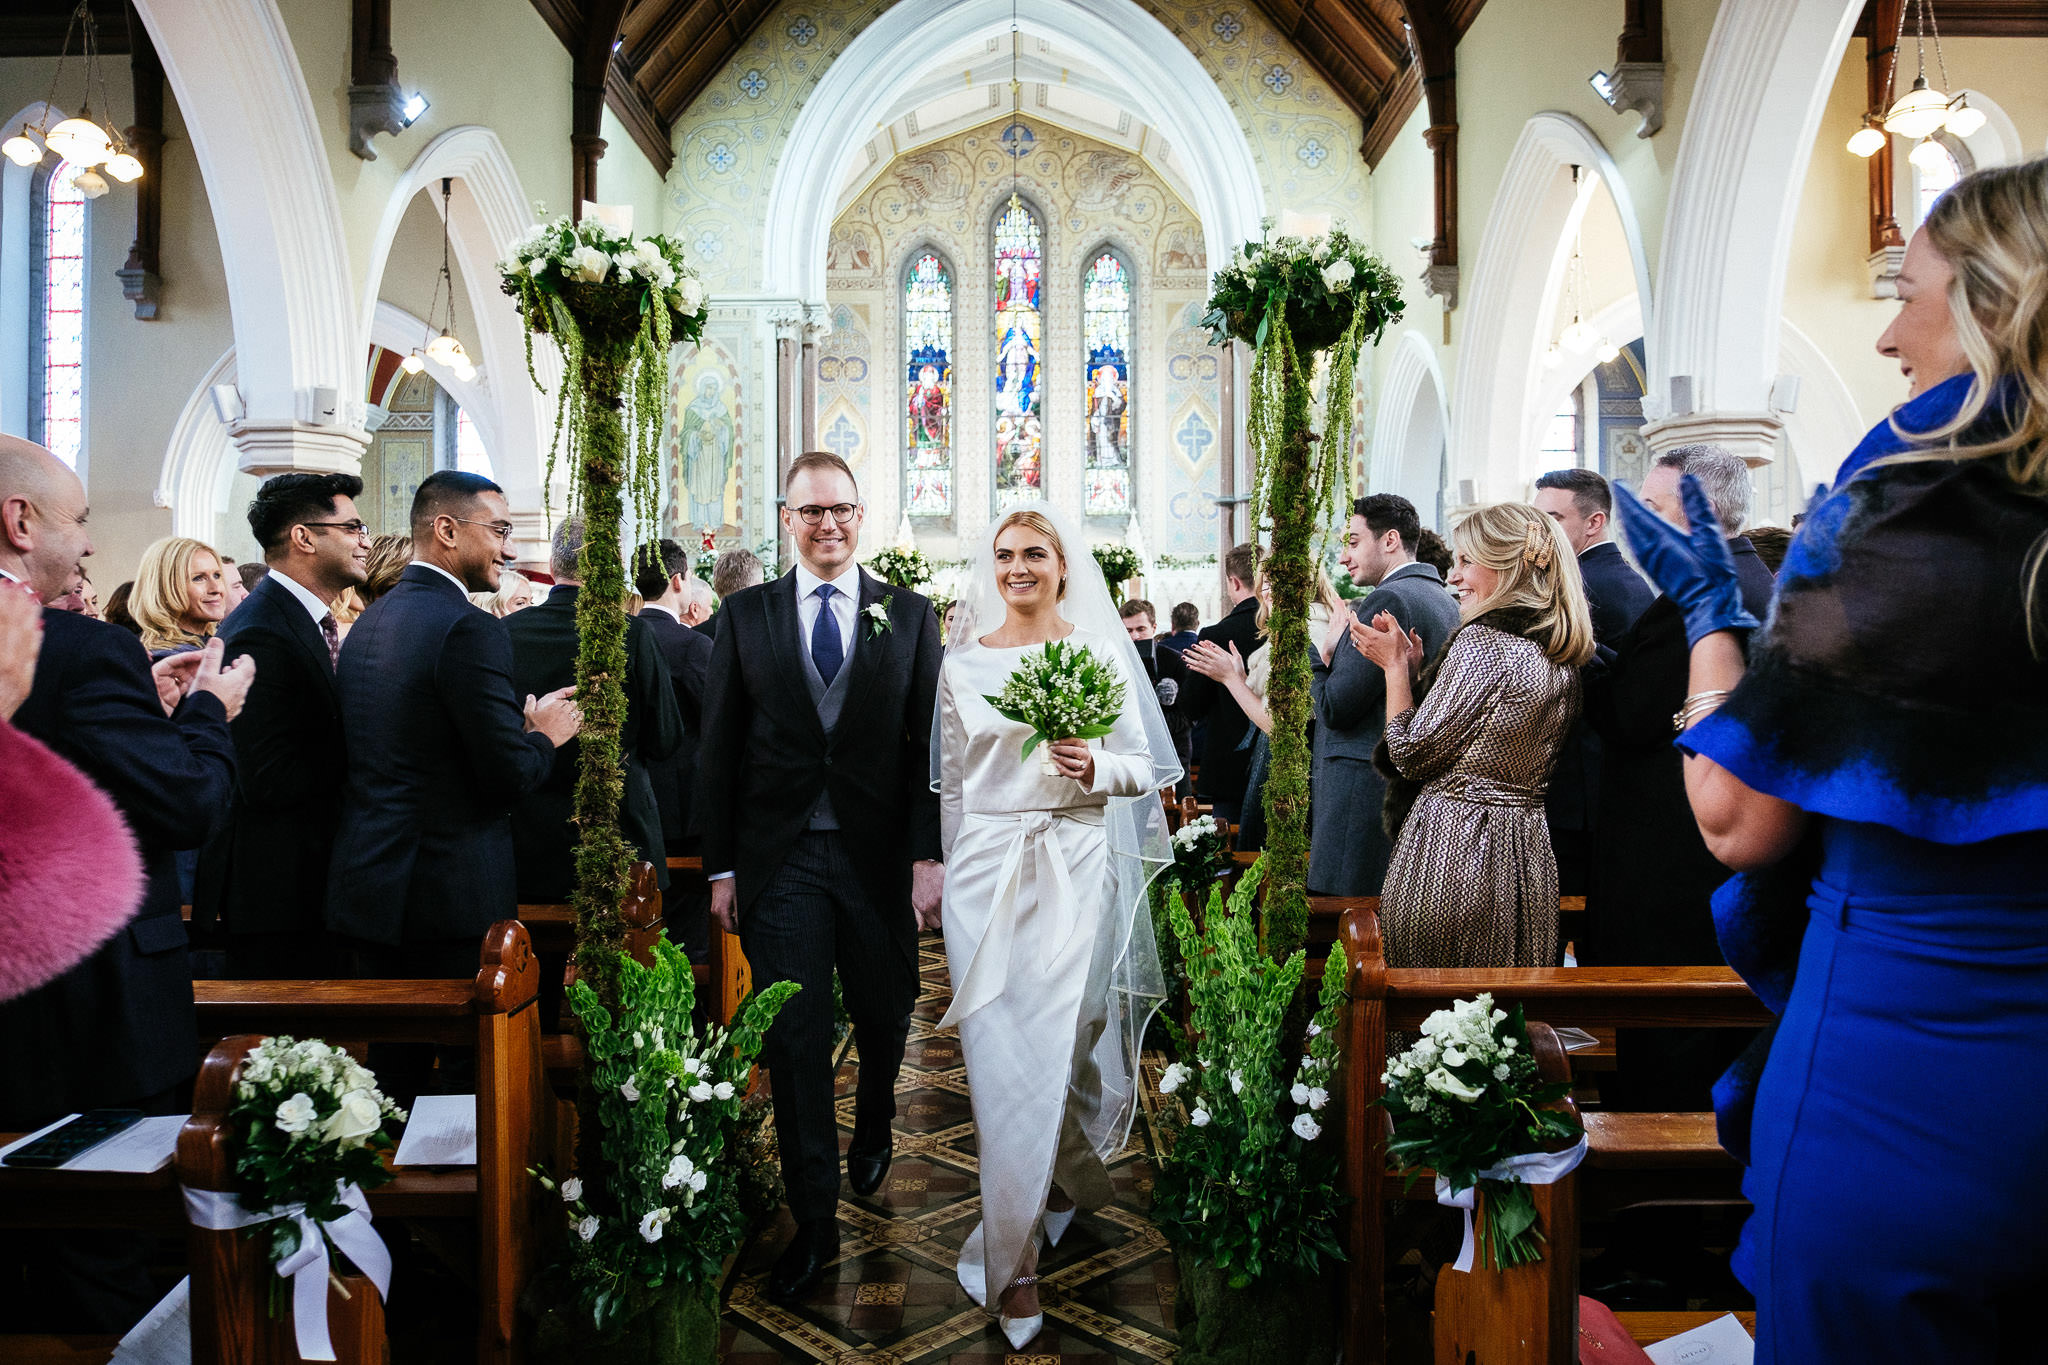 bride and groom walking down aisle after their wedding ceremony at St Brigid's Church Oldcastle